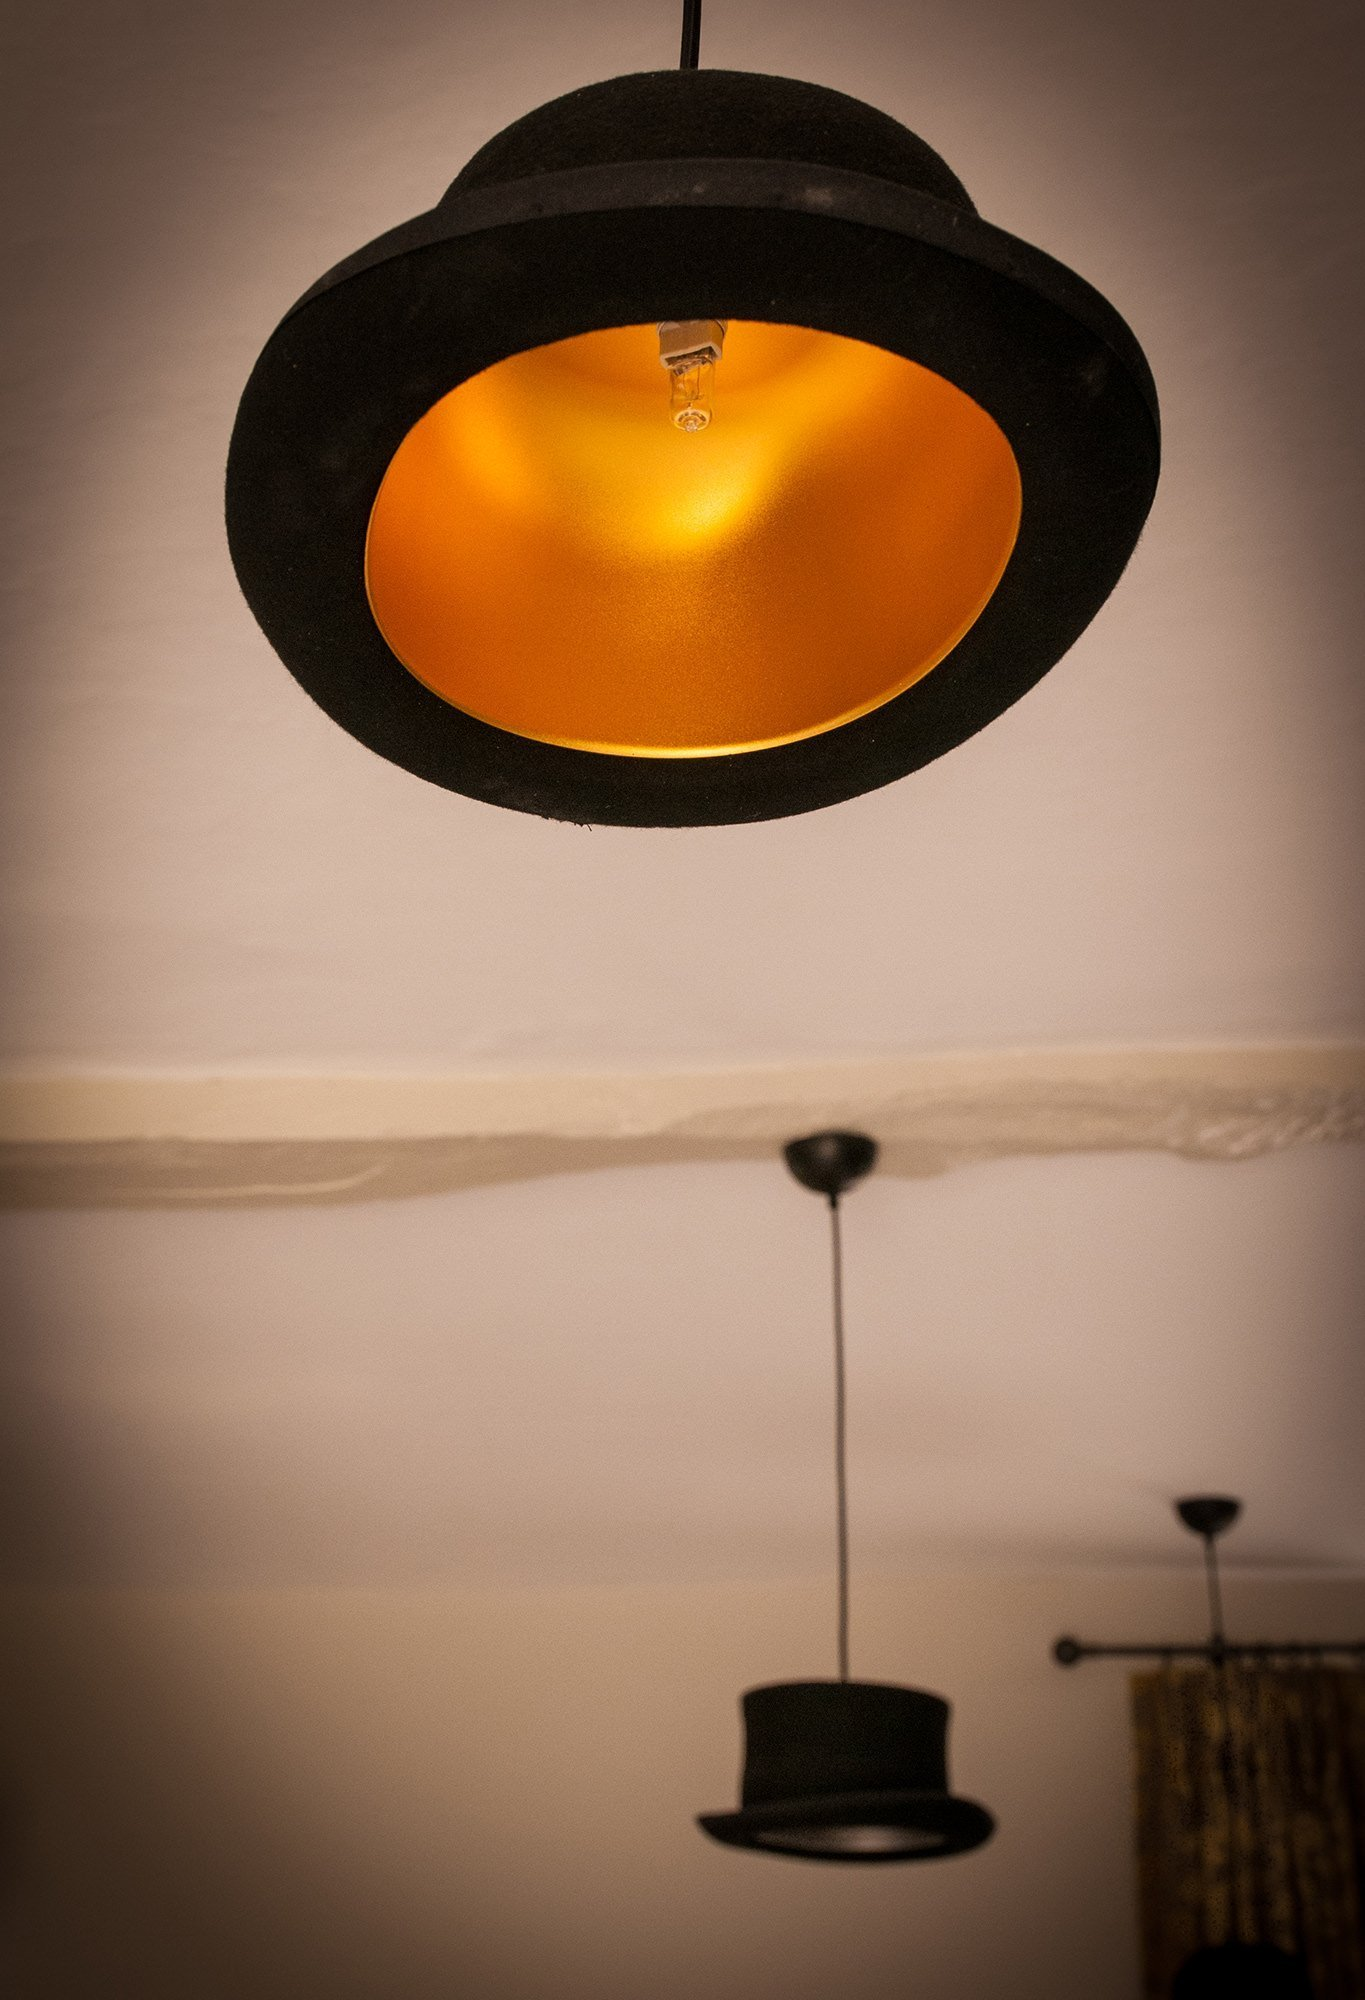 lower-brook-house-bowler-hat-light